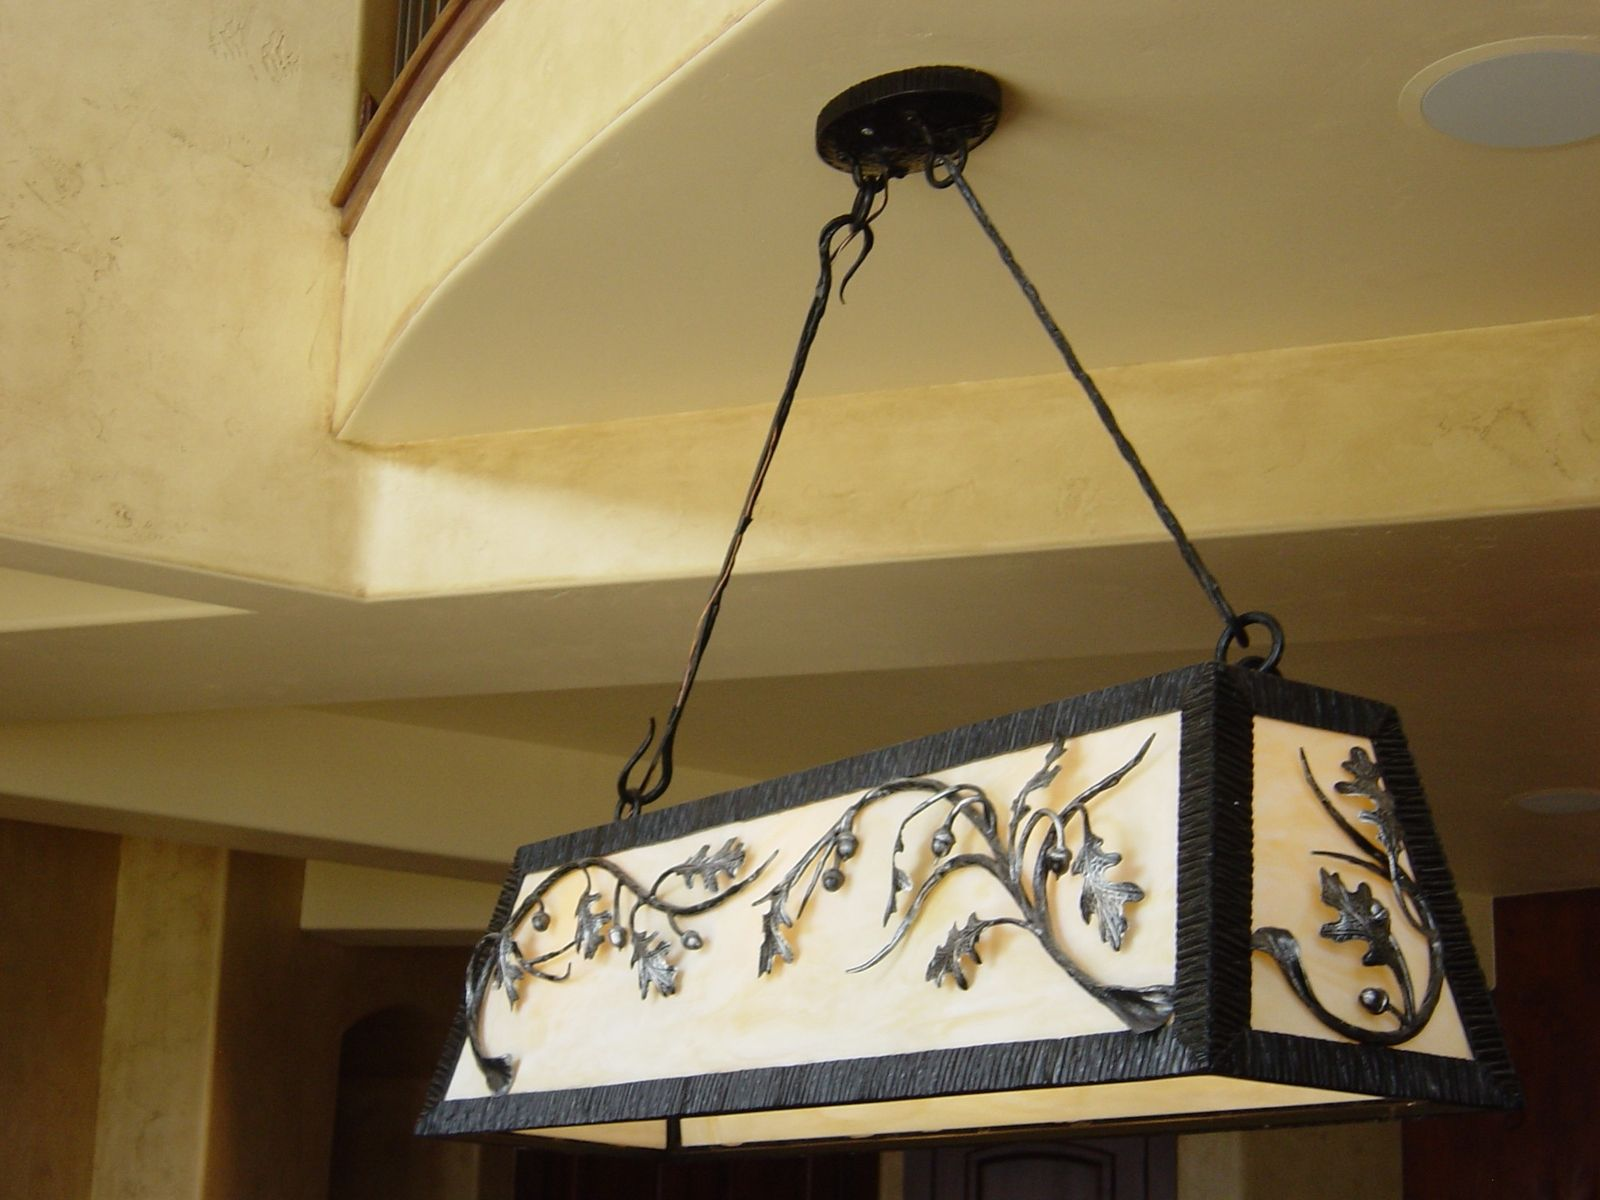 Hand Made Forged Pool Table Light By Reflections From The Forge - Pool table light installation